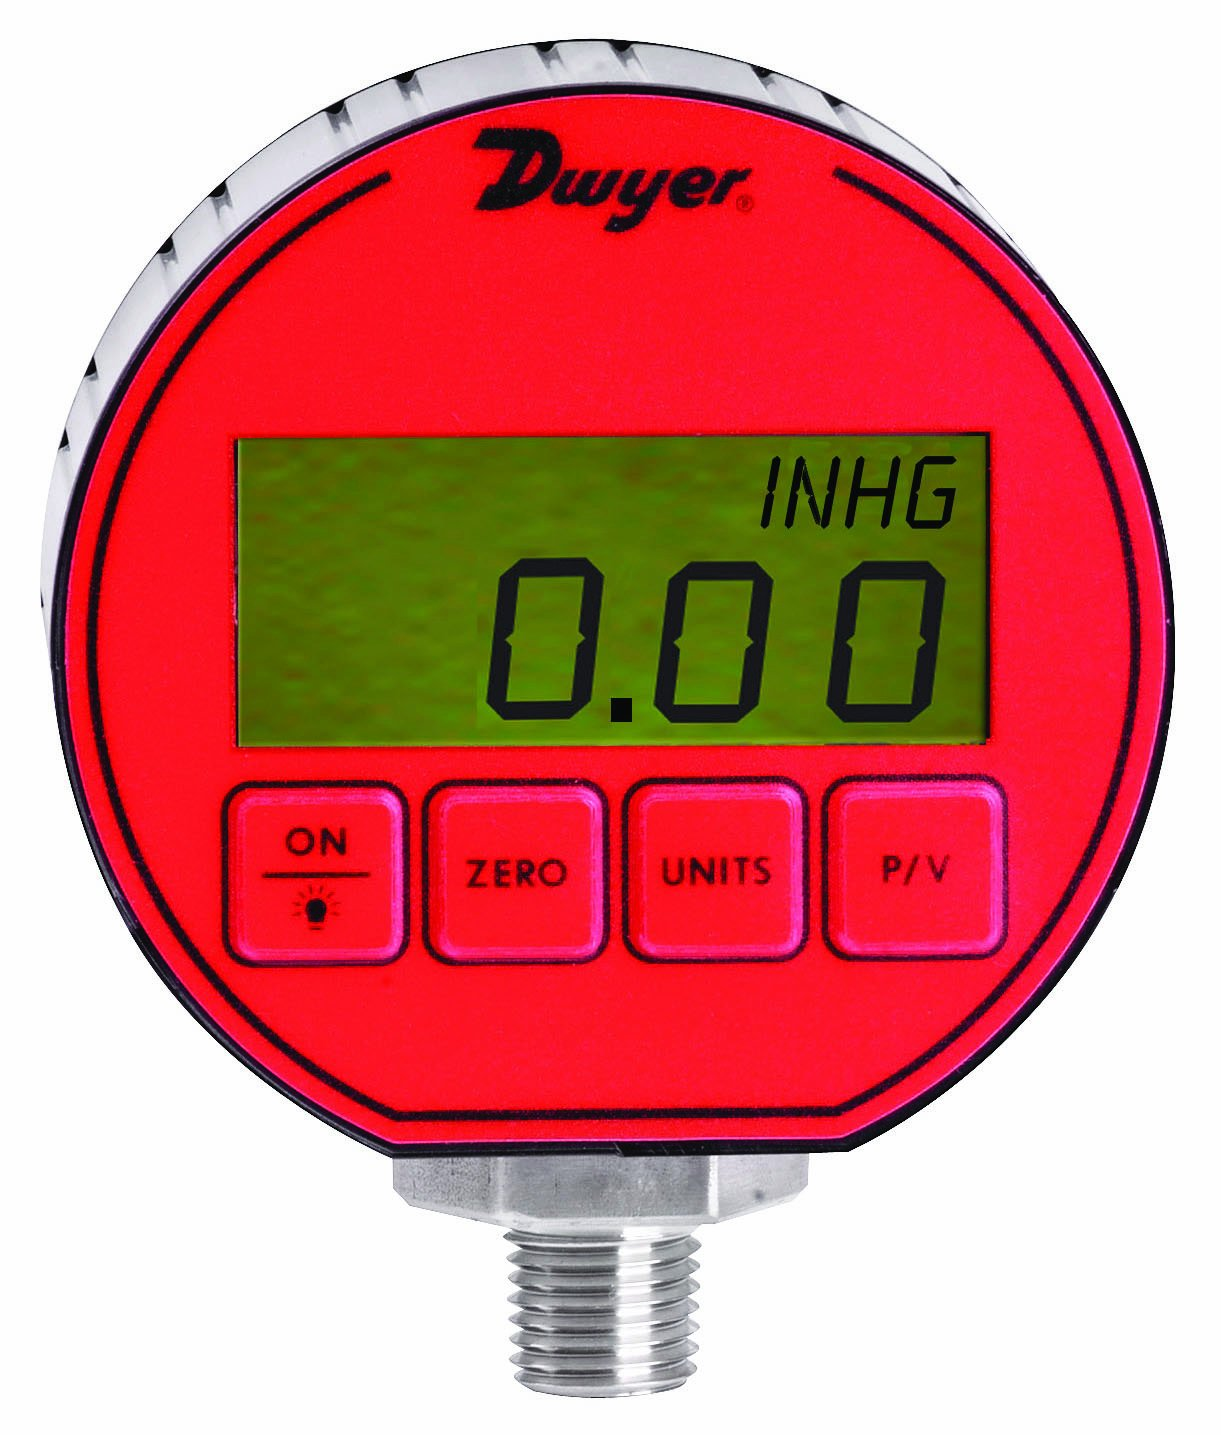 Dwyer DPG Series Digital Pressure Gauge, Plus /-0.5-Percent Full Scale Accuracy, Range -30' Hg to 0 to 15 Psig Range -30 Hg to 0 to 15 Psig Dwyer Instruments DPG-020